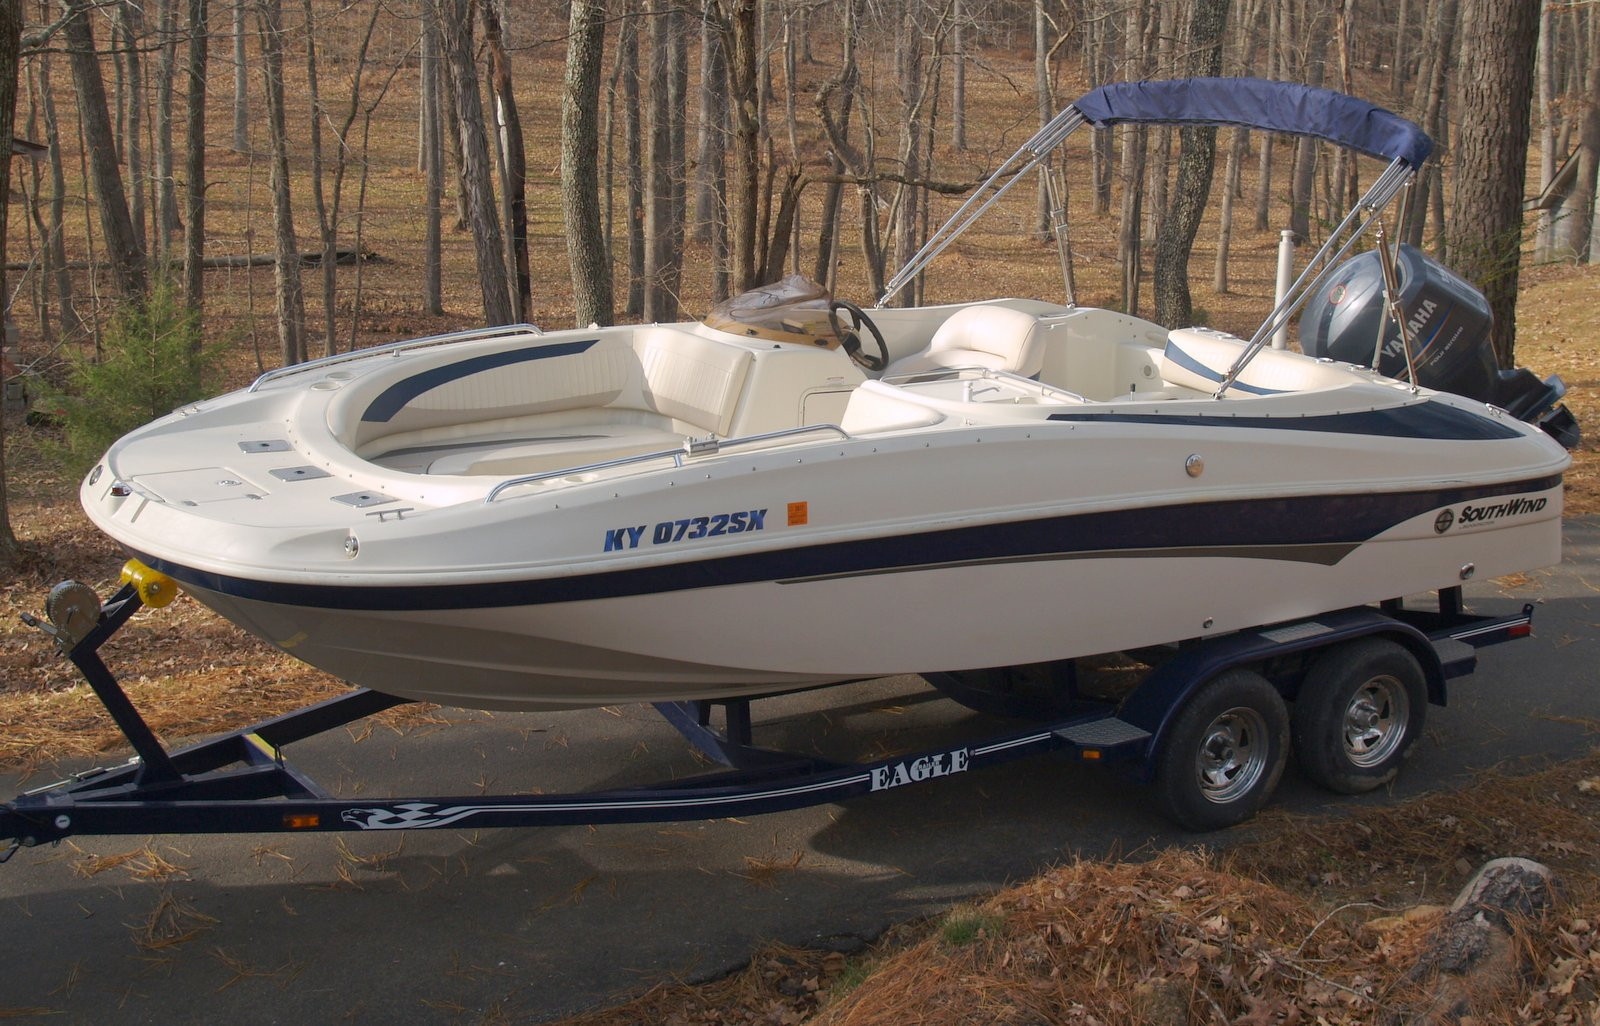 21 ft southwind deluxe fish and ski boat kentucky lake for Best fish and ski boats 2017